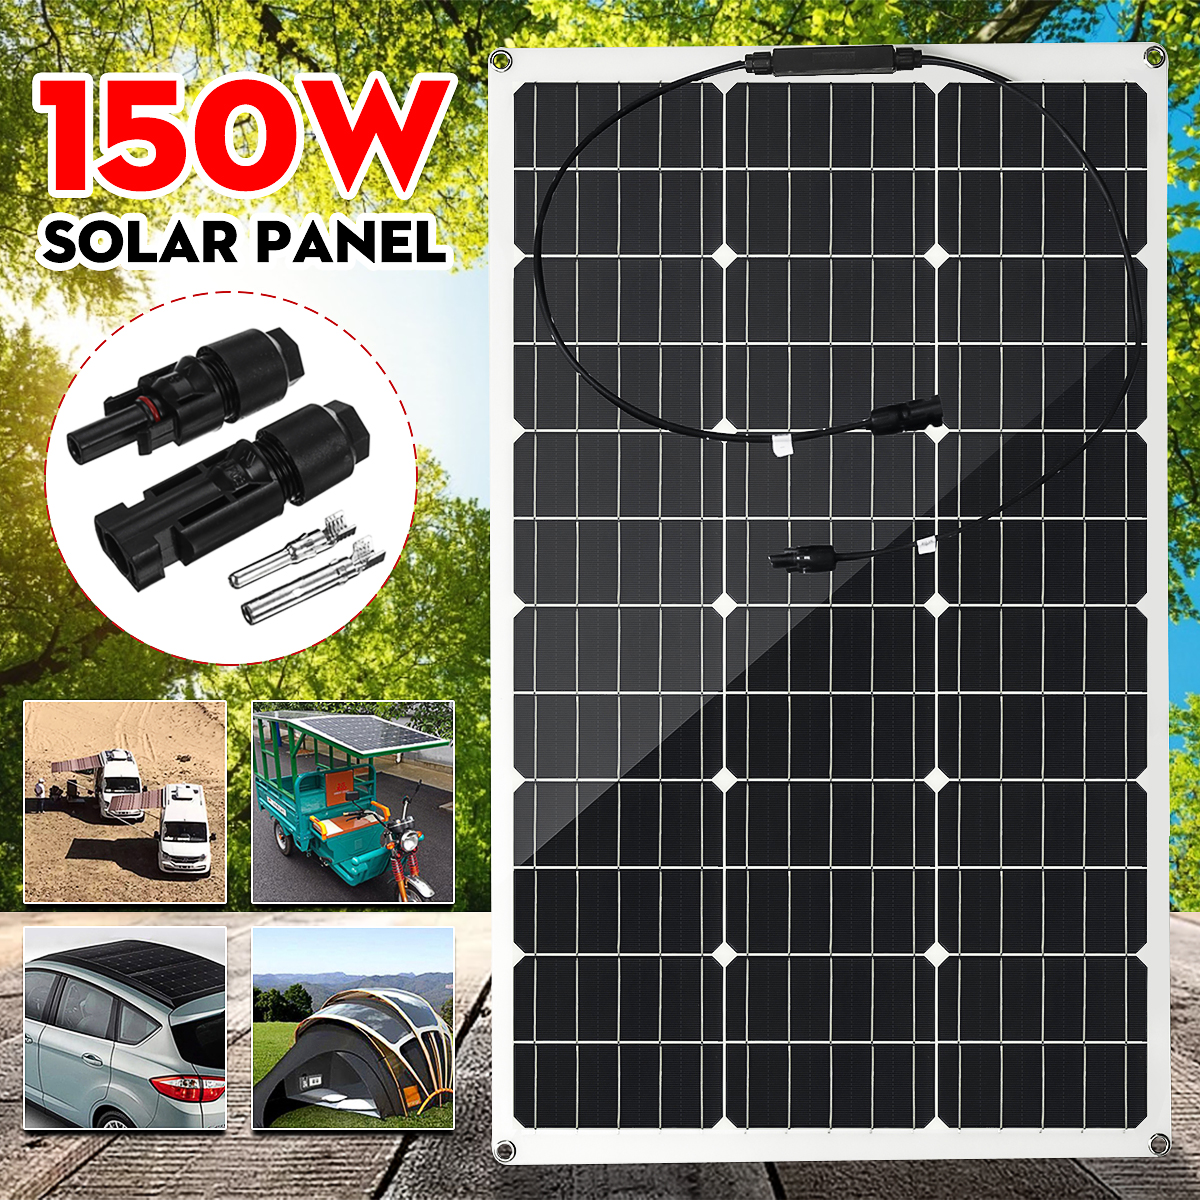 Solar Panel 150W 18V Semi-flexible Monocrystalline Solar Cell DIY Module MC4 Cable Outdoor Connector Battery Charger Waterproof